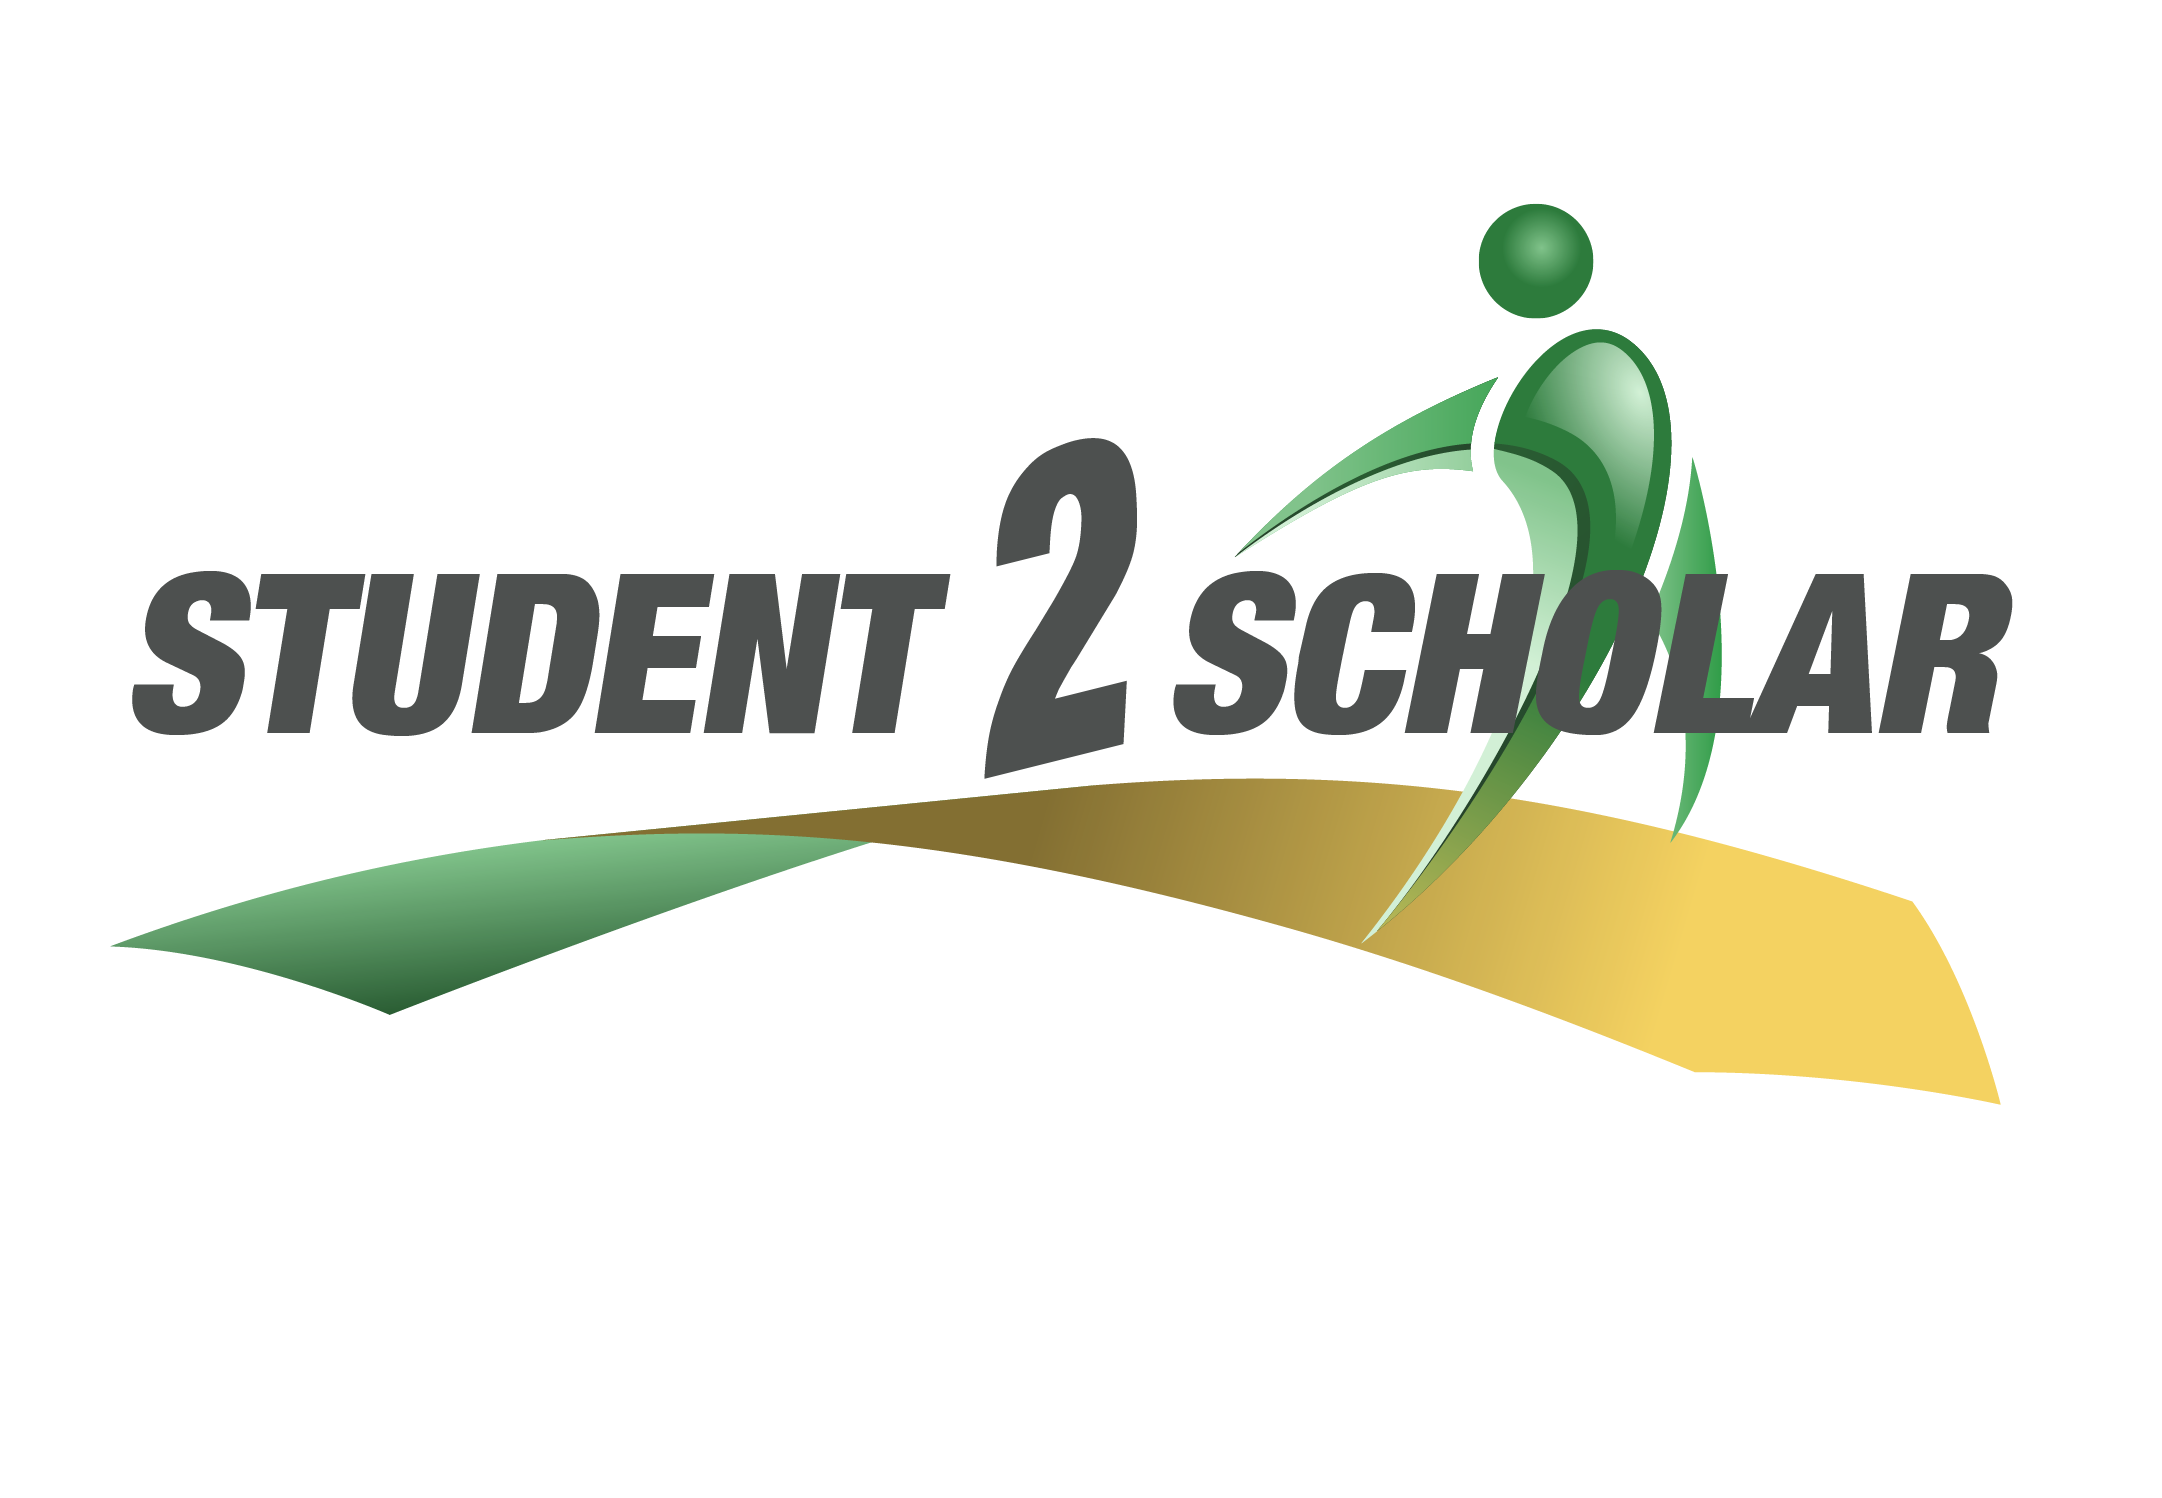 logo for student 2 scholar modules